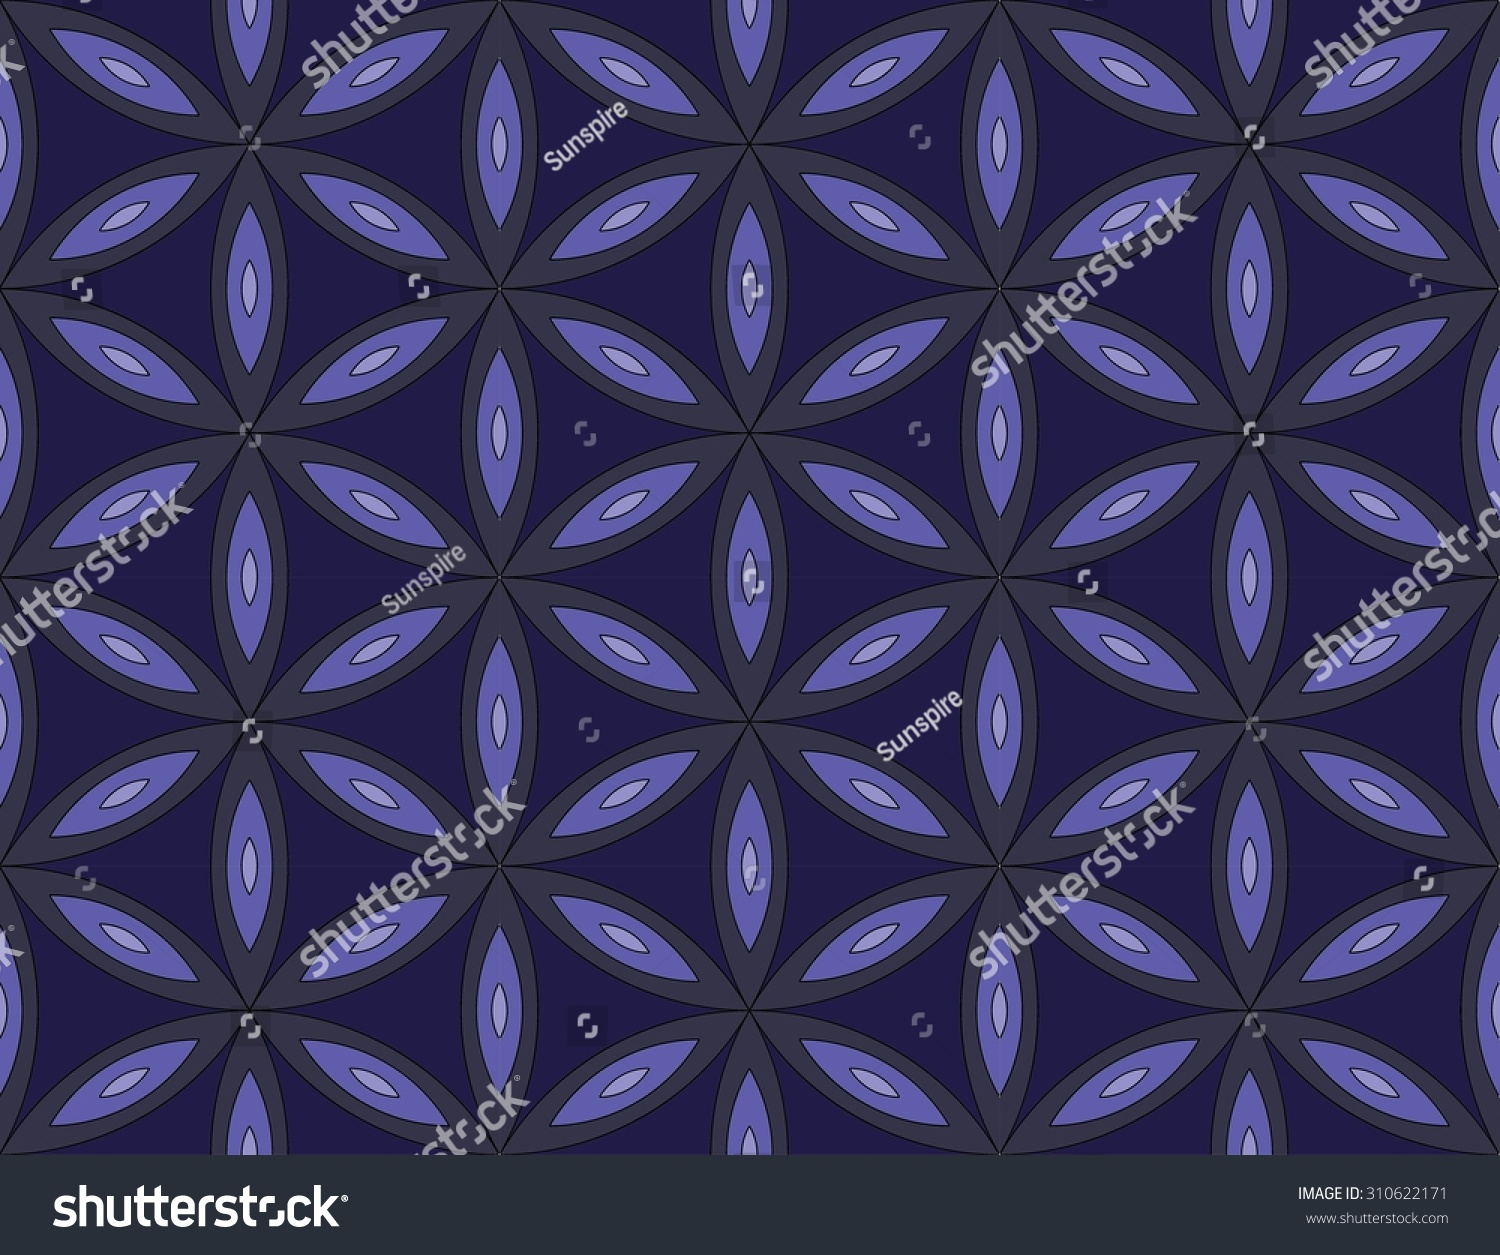 Vector modern seamless pattern sacred geometry colorful background flower of life textile print abstract texture fashion design bed sheets or pillow pattern